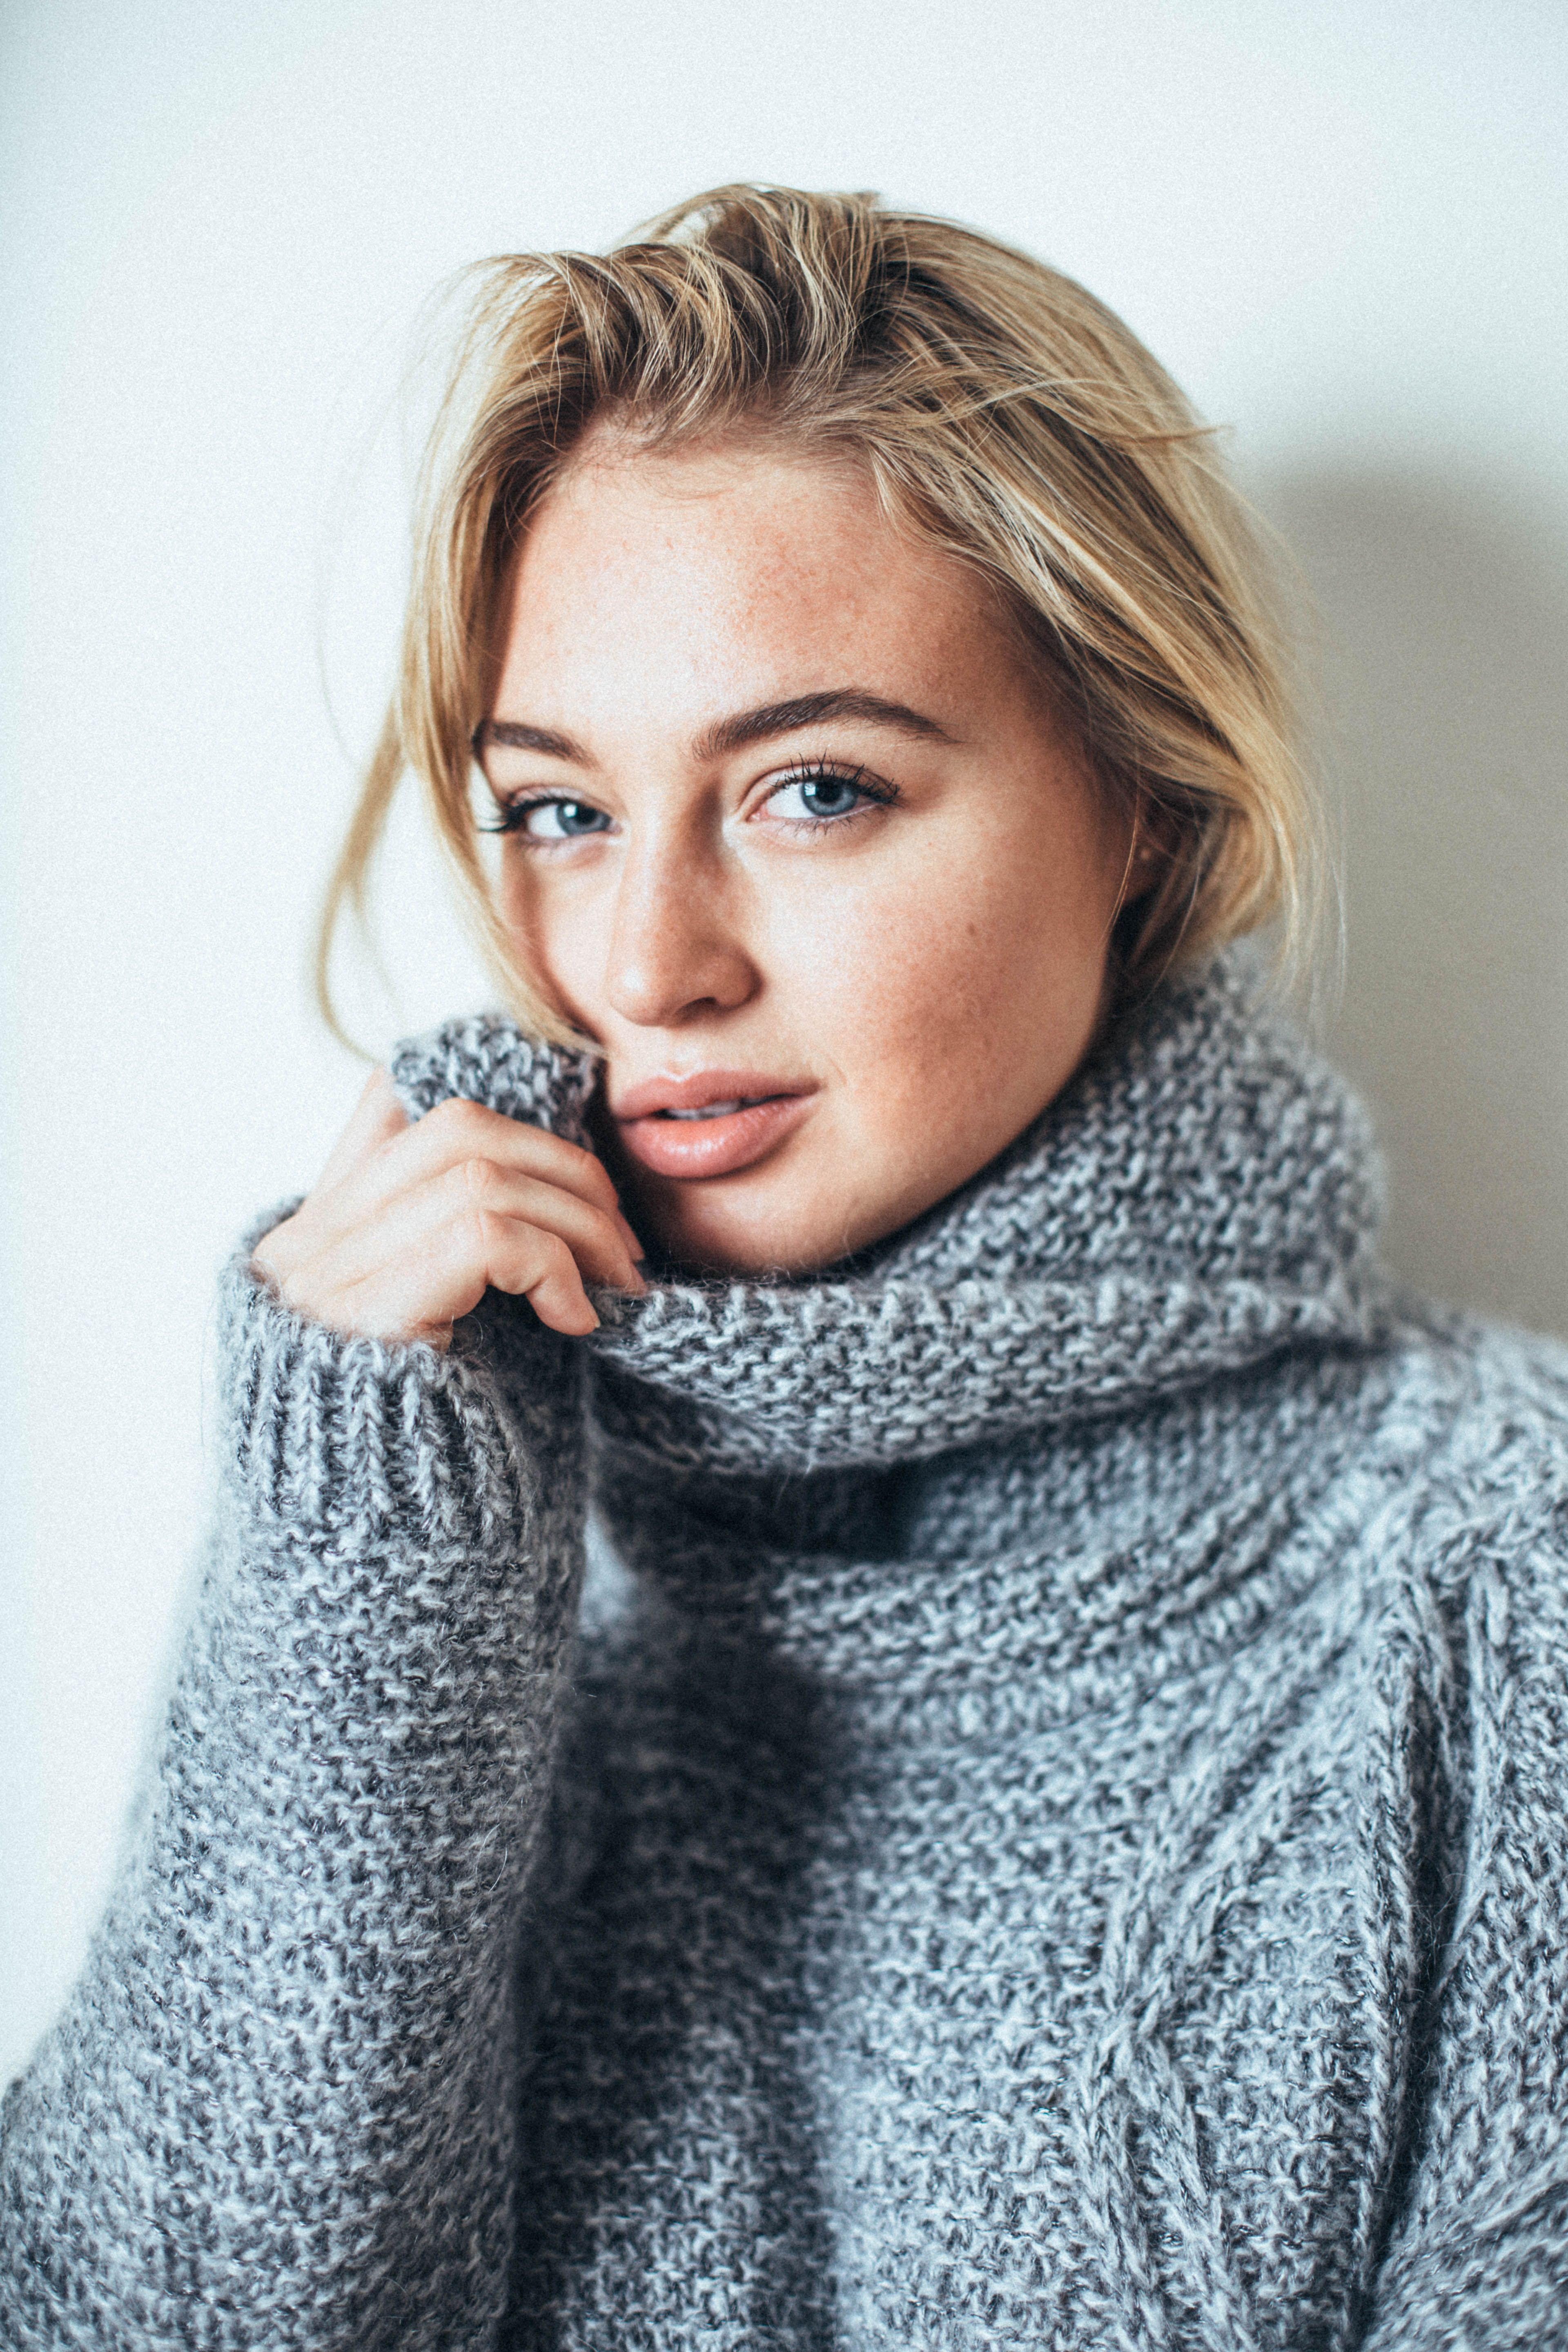 Model Iskra Lawrence Photography By James Badou - Iskra Lawrence Iphone , HD Wallpaper & Backgrounds